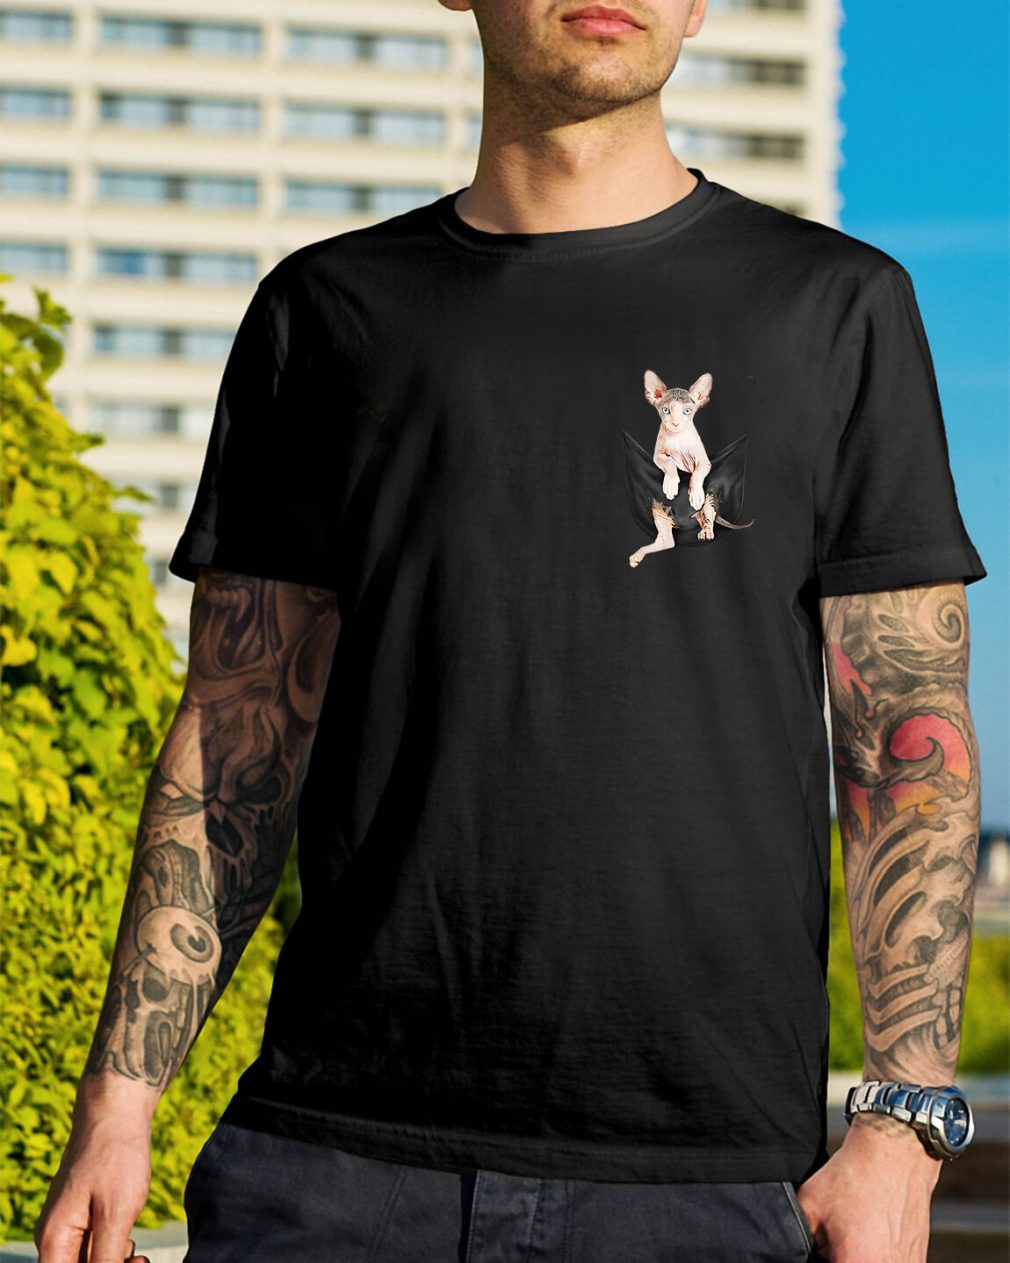 Sphynx cat breast pocket shirt